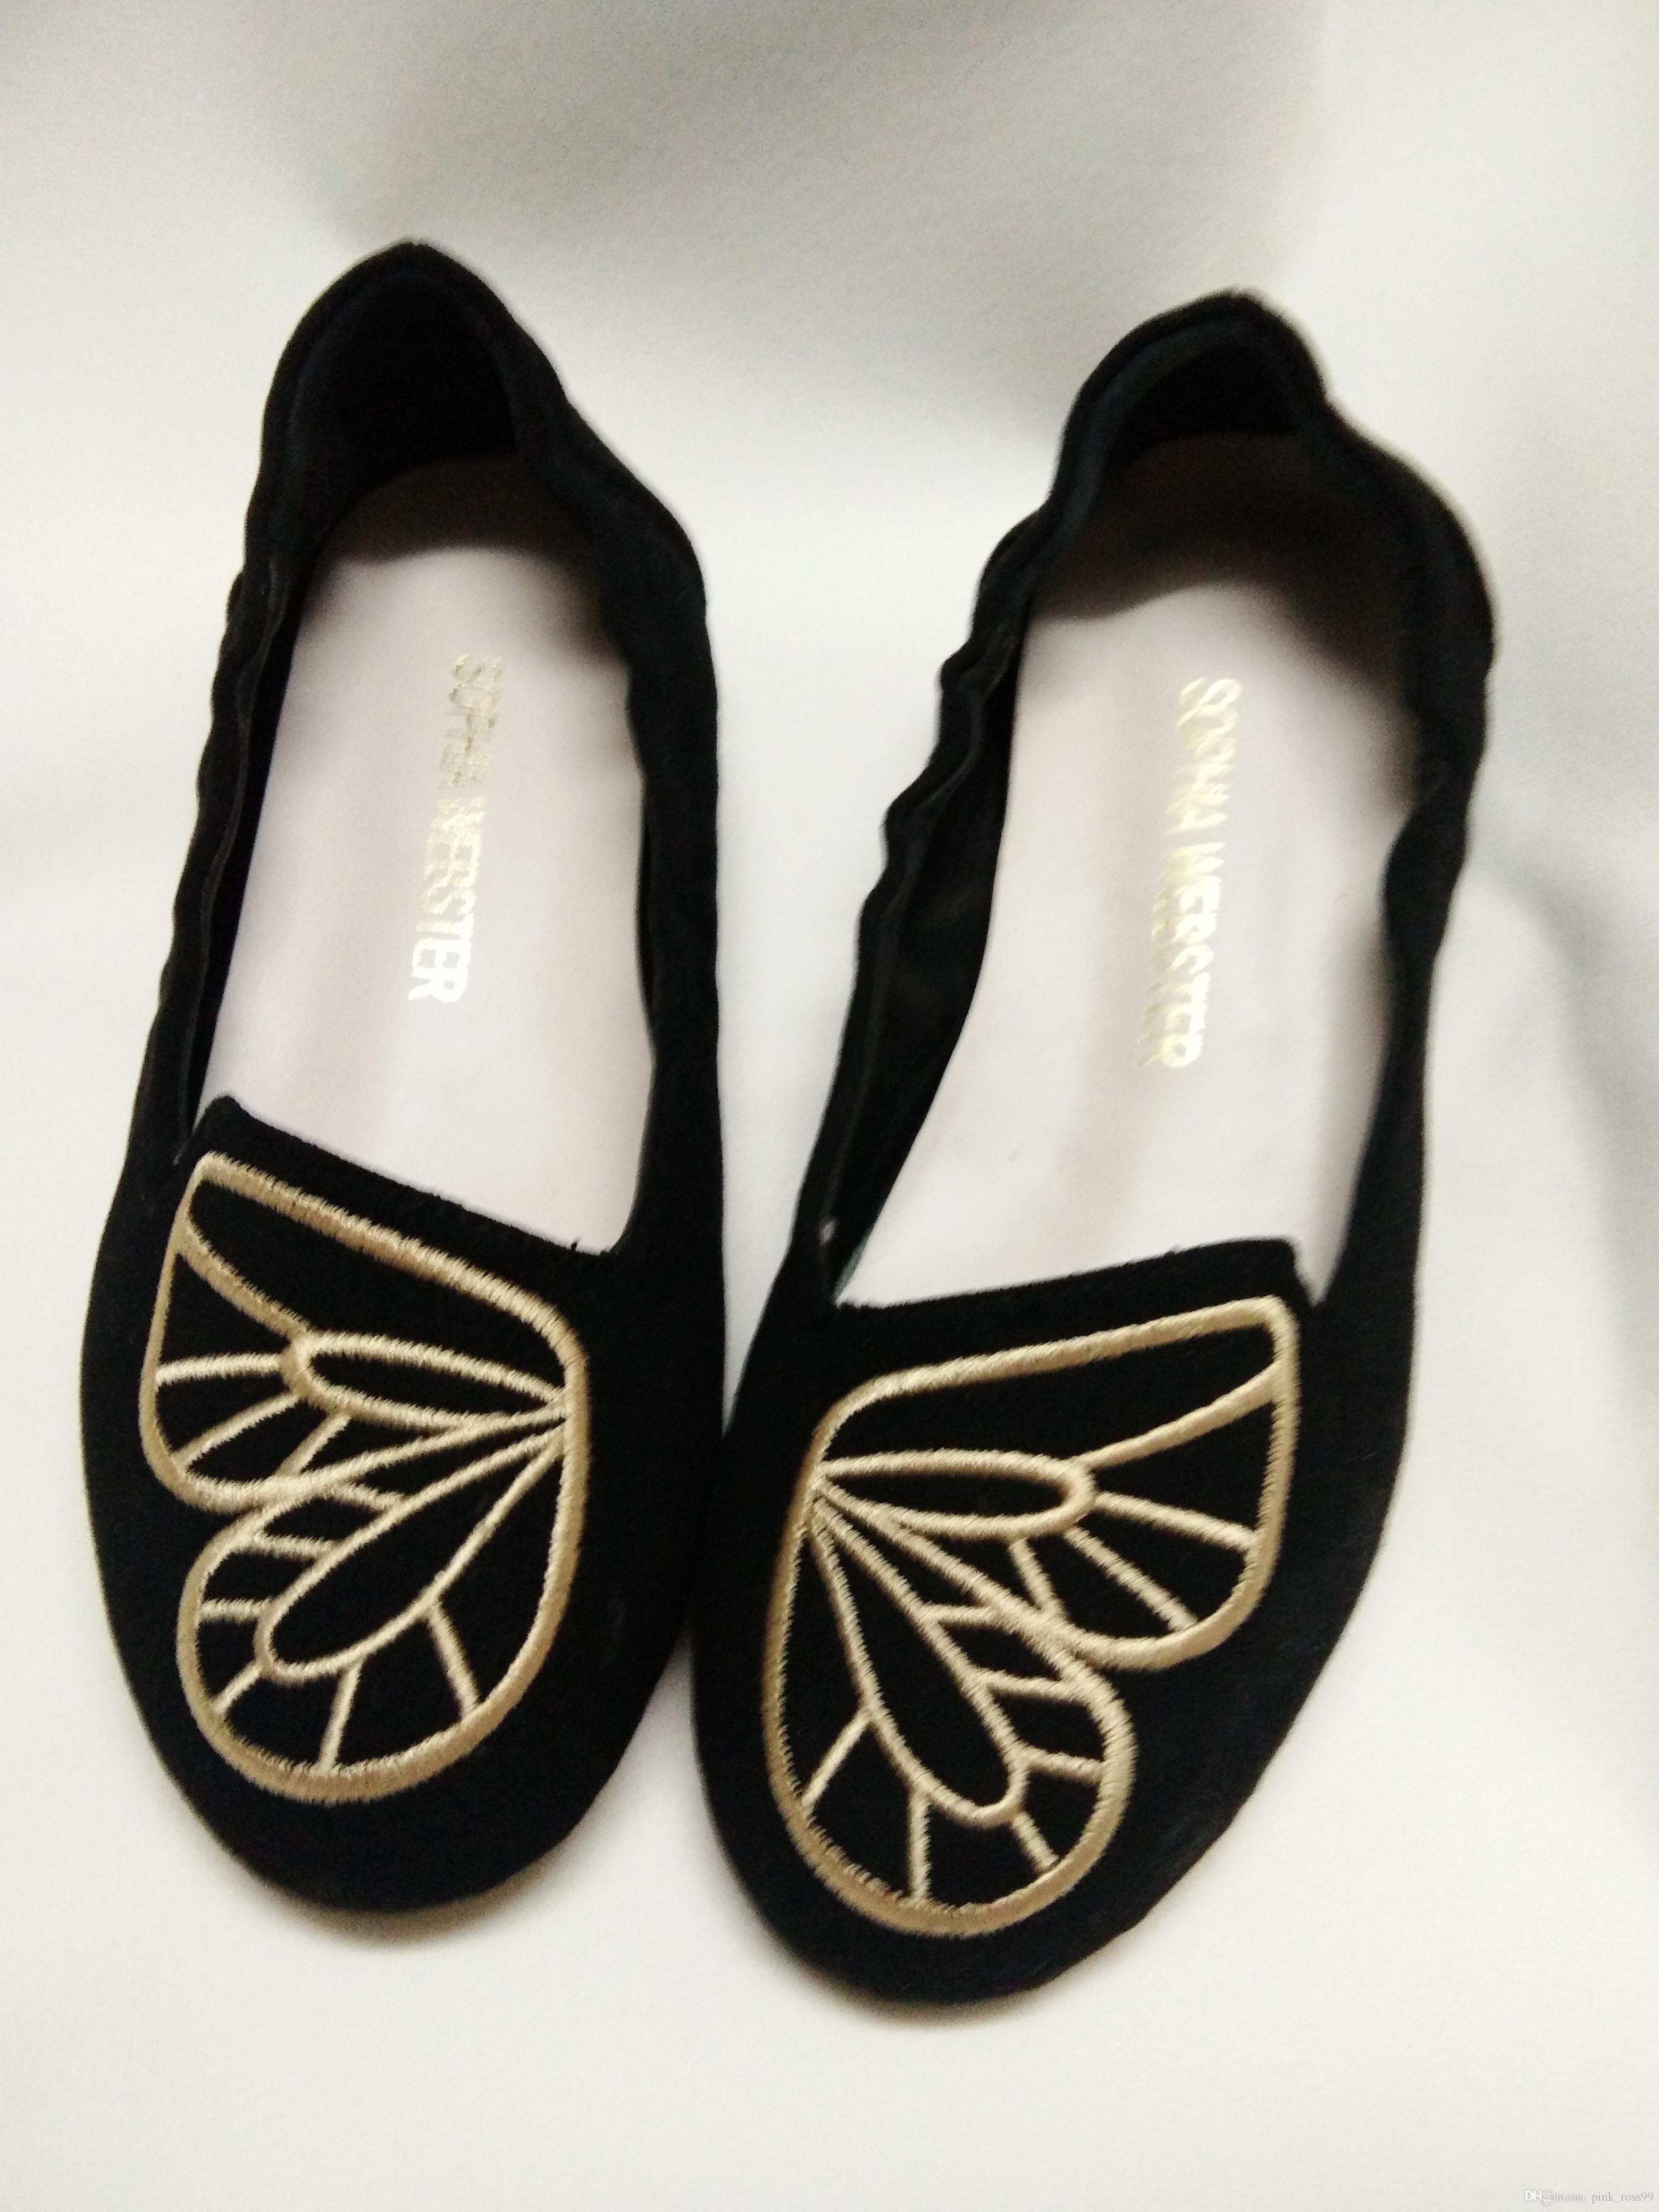 Free shipping 2019 Ladies suede leather Round toes shoes low heels embroider butterfly ornaments Sophia Webster black ballet dance SHOE34-42